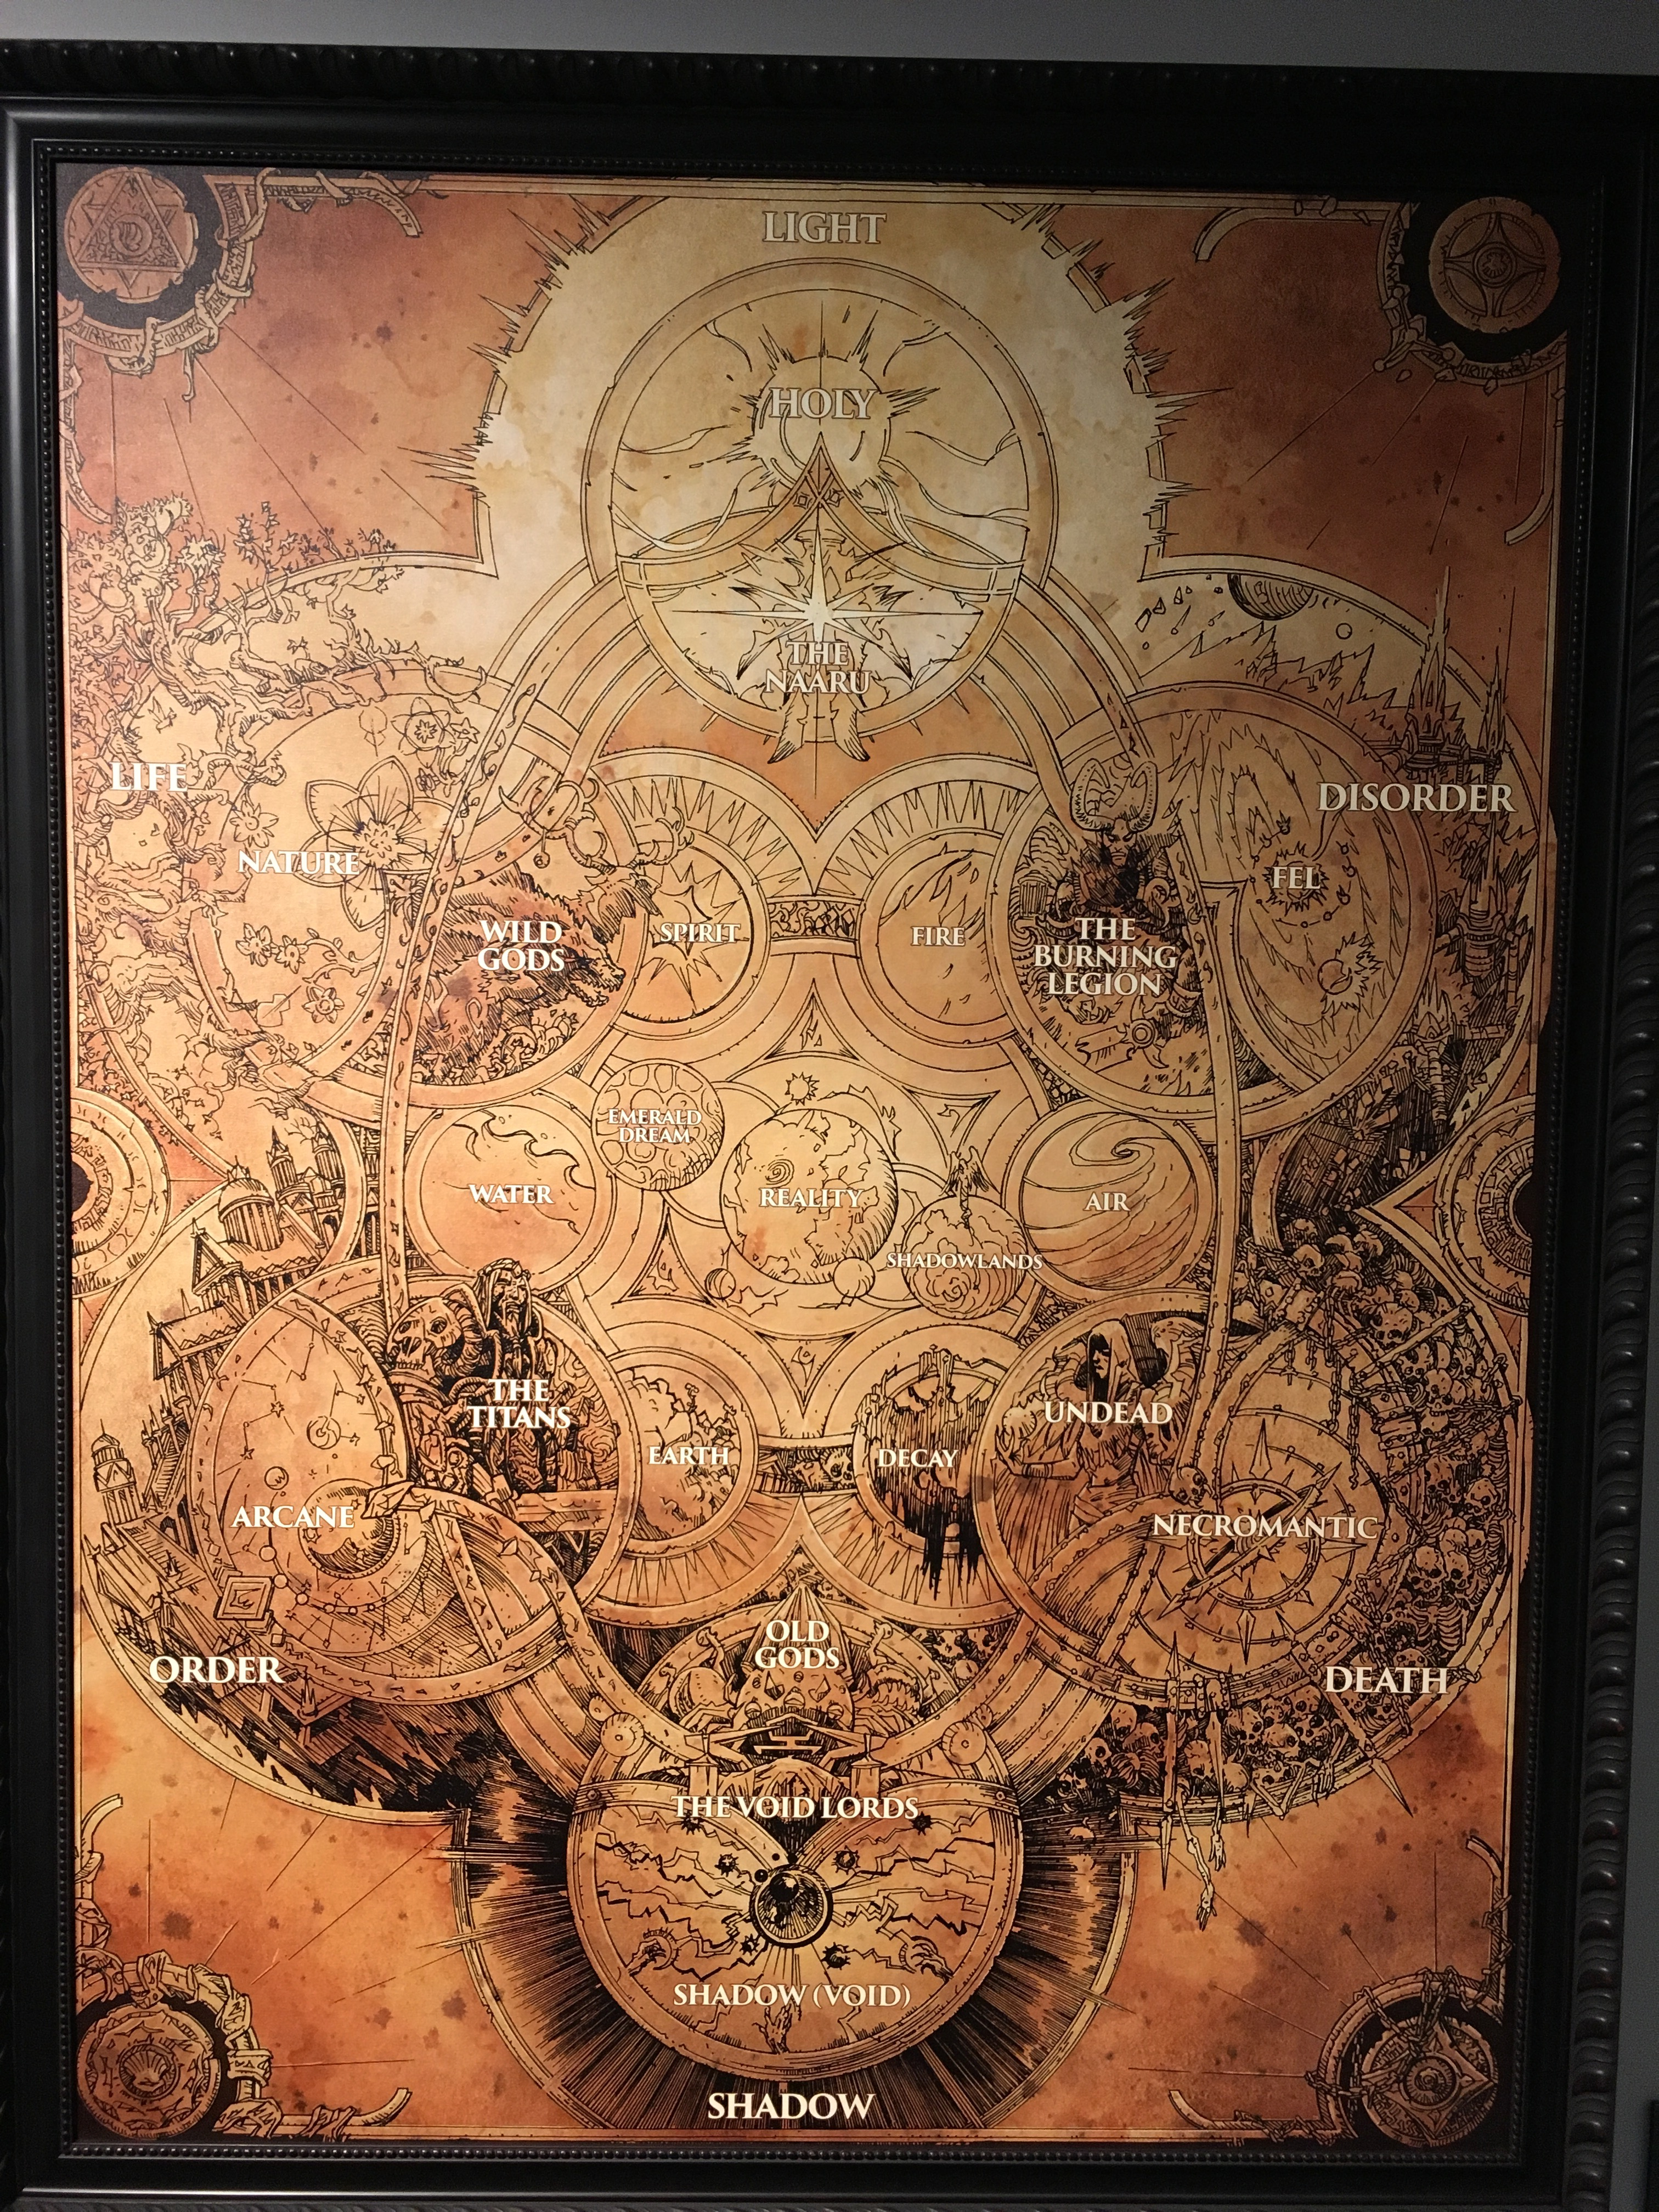 World of warcraft the naaru map lallous lab sentient energy beings made up of shards of fractured light i took the picture of this map from the blizzard entertainment library gumiabroncs Choice Image